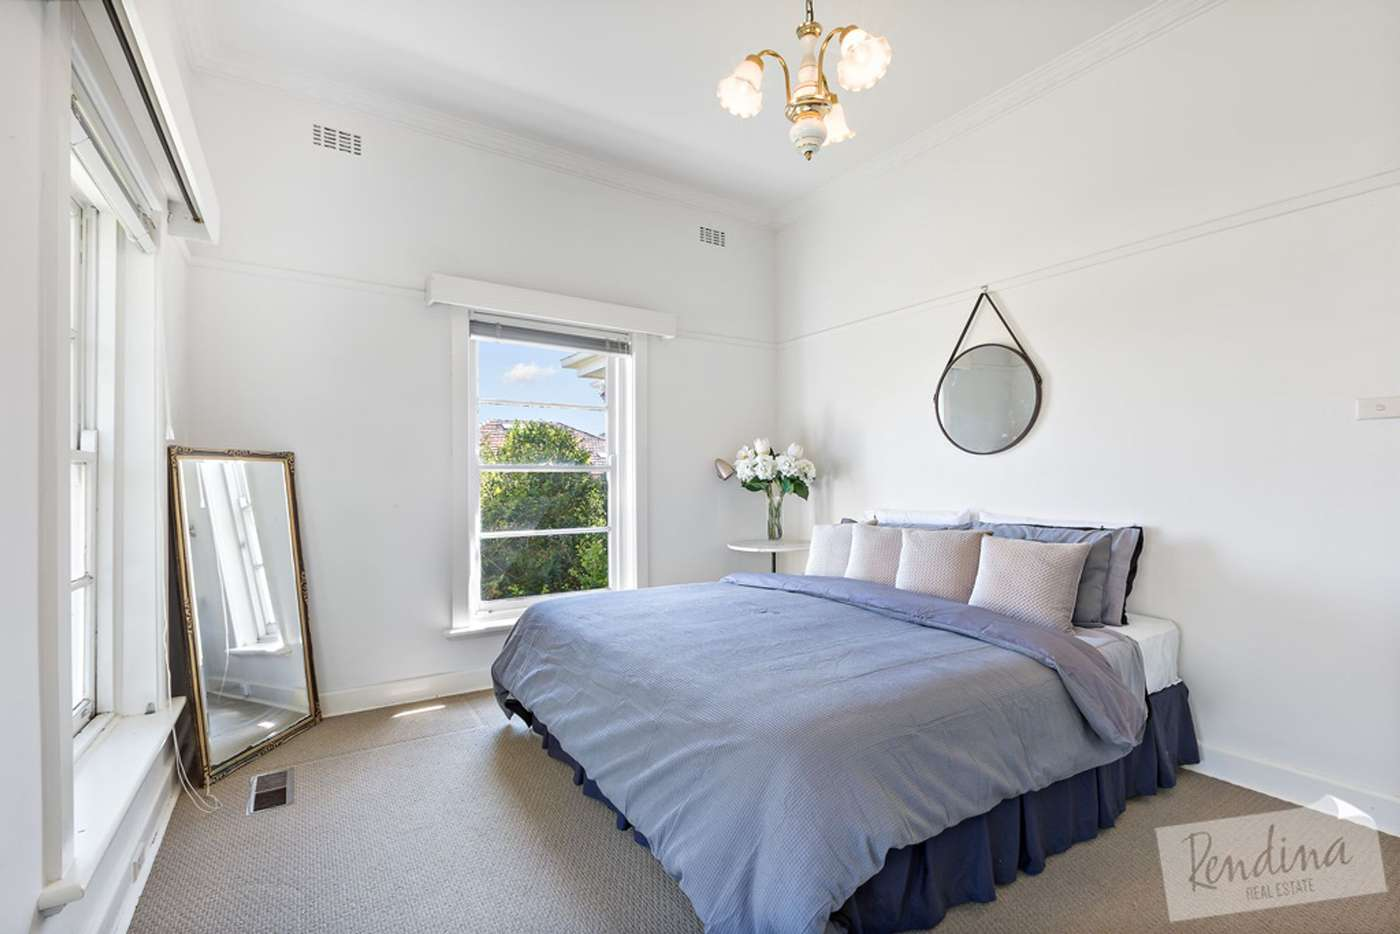 Sixth view of Homely house listing, 118 Woodland Street, Strathmore VIC 3041